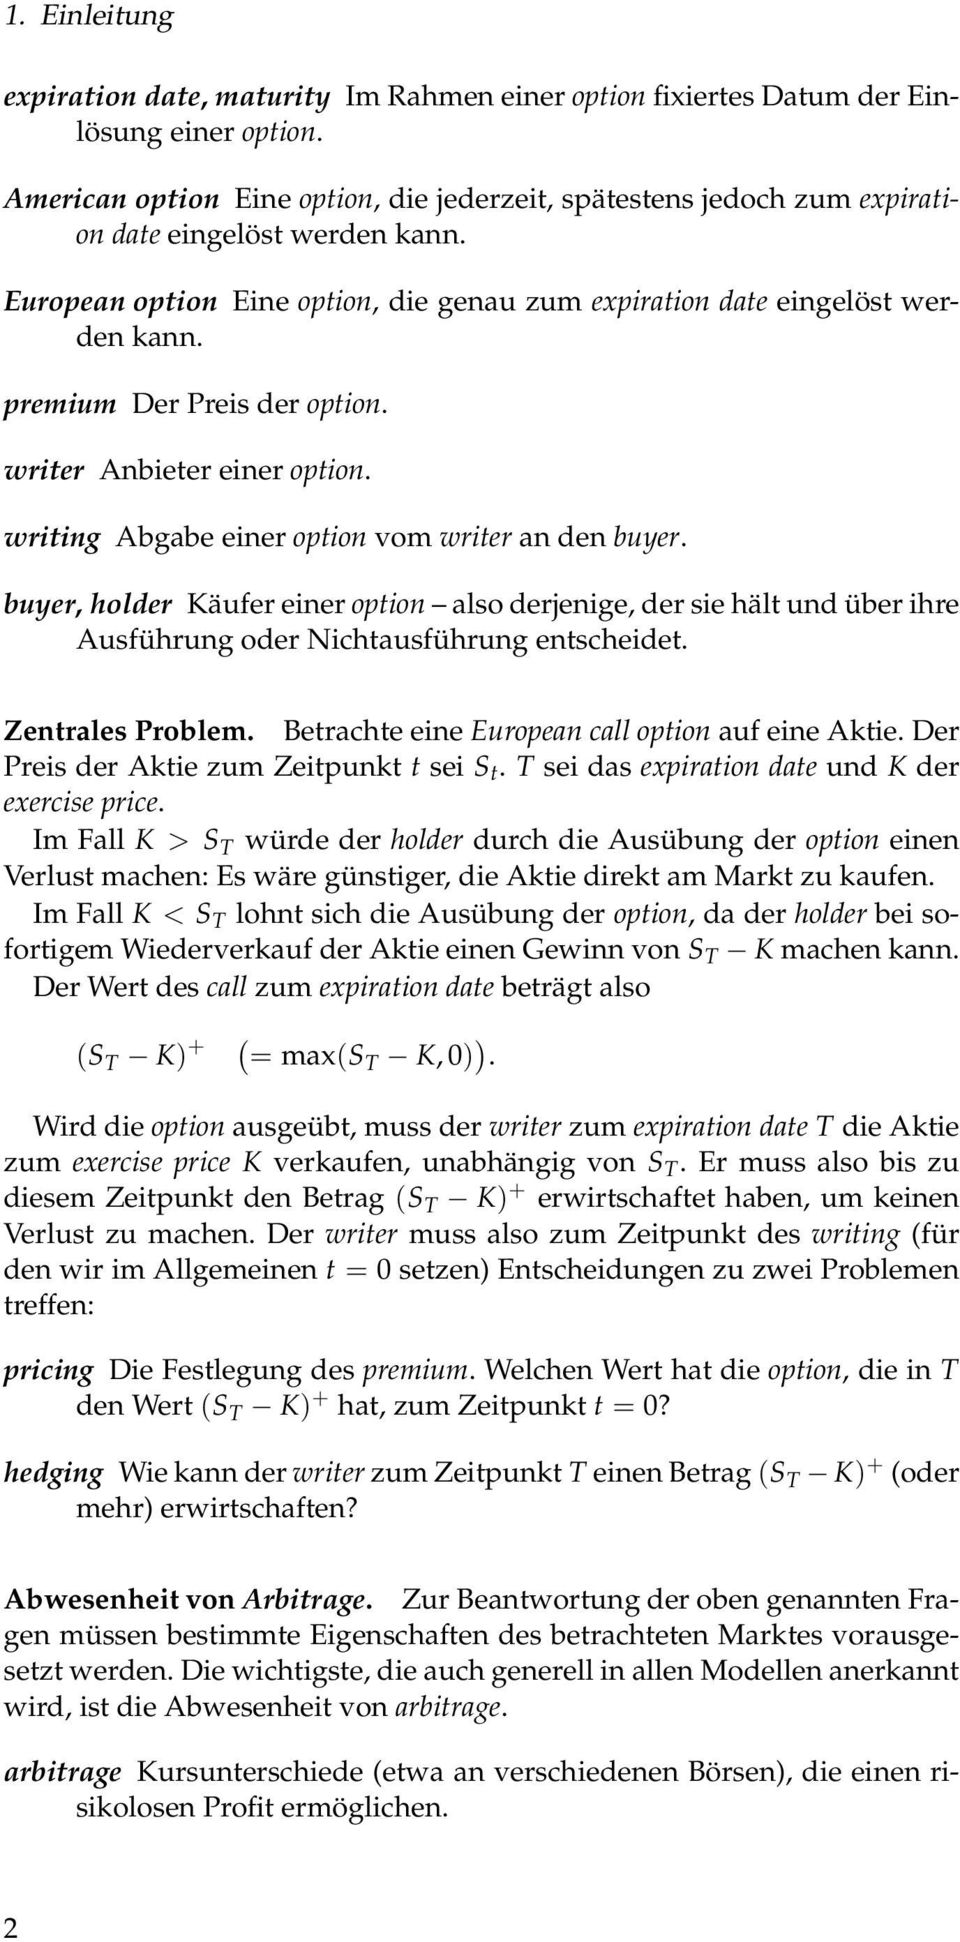 premium Der Preis der option. writer Anbieter einer option. writing Abgabe einer option vom writer an den buyer.